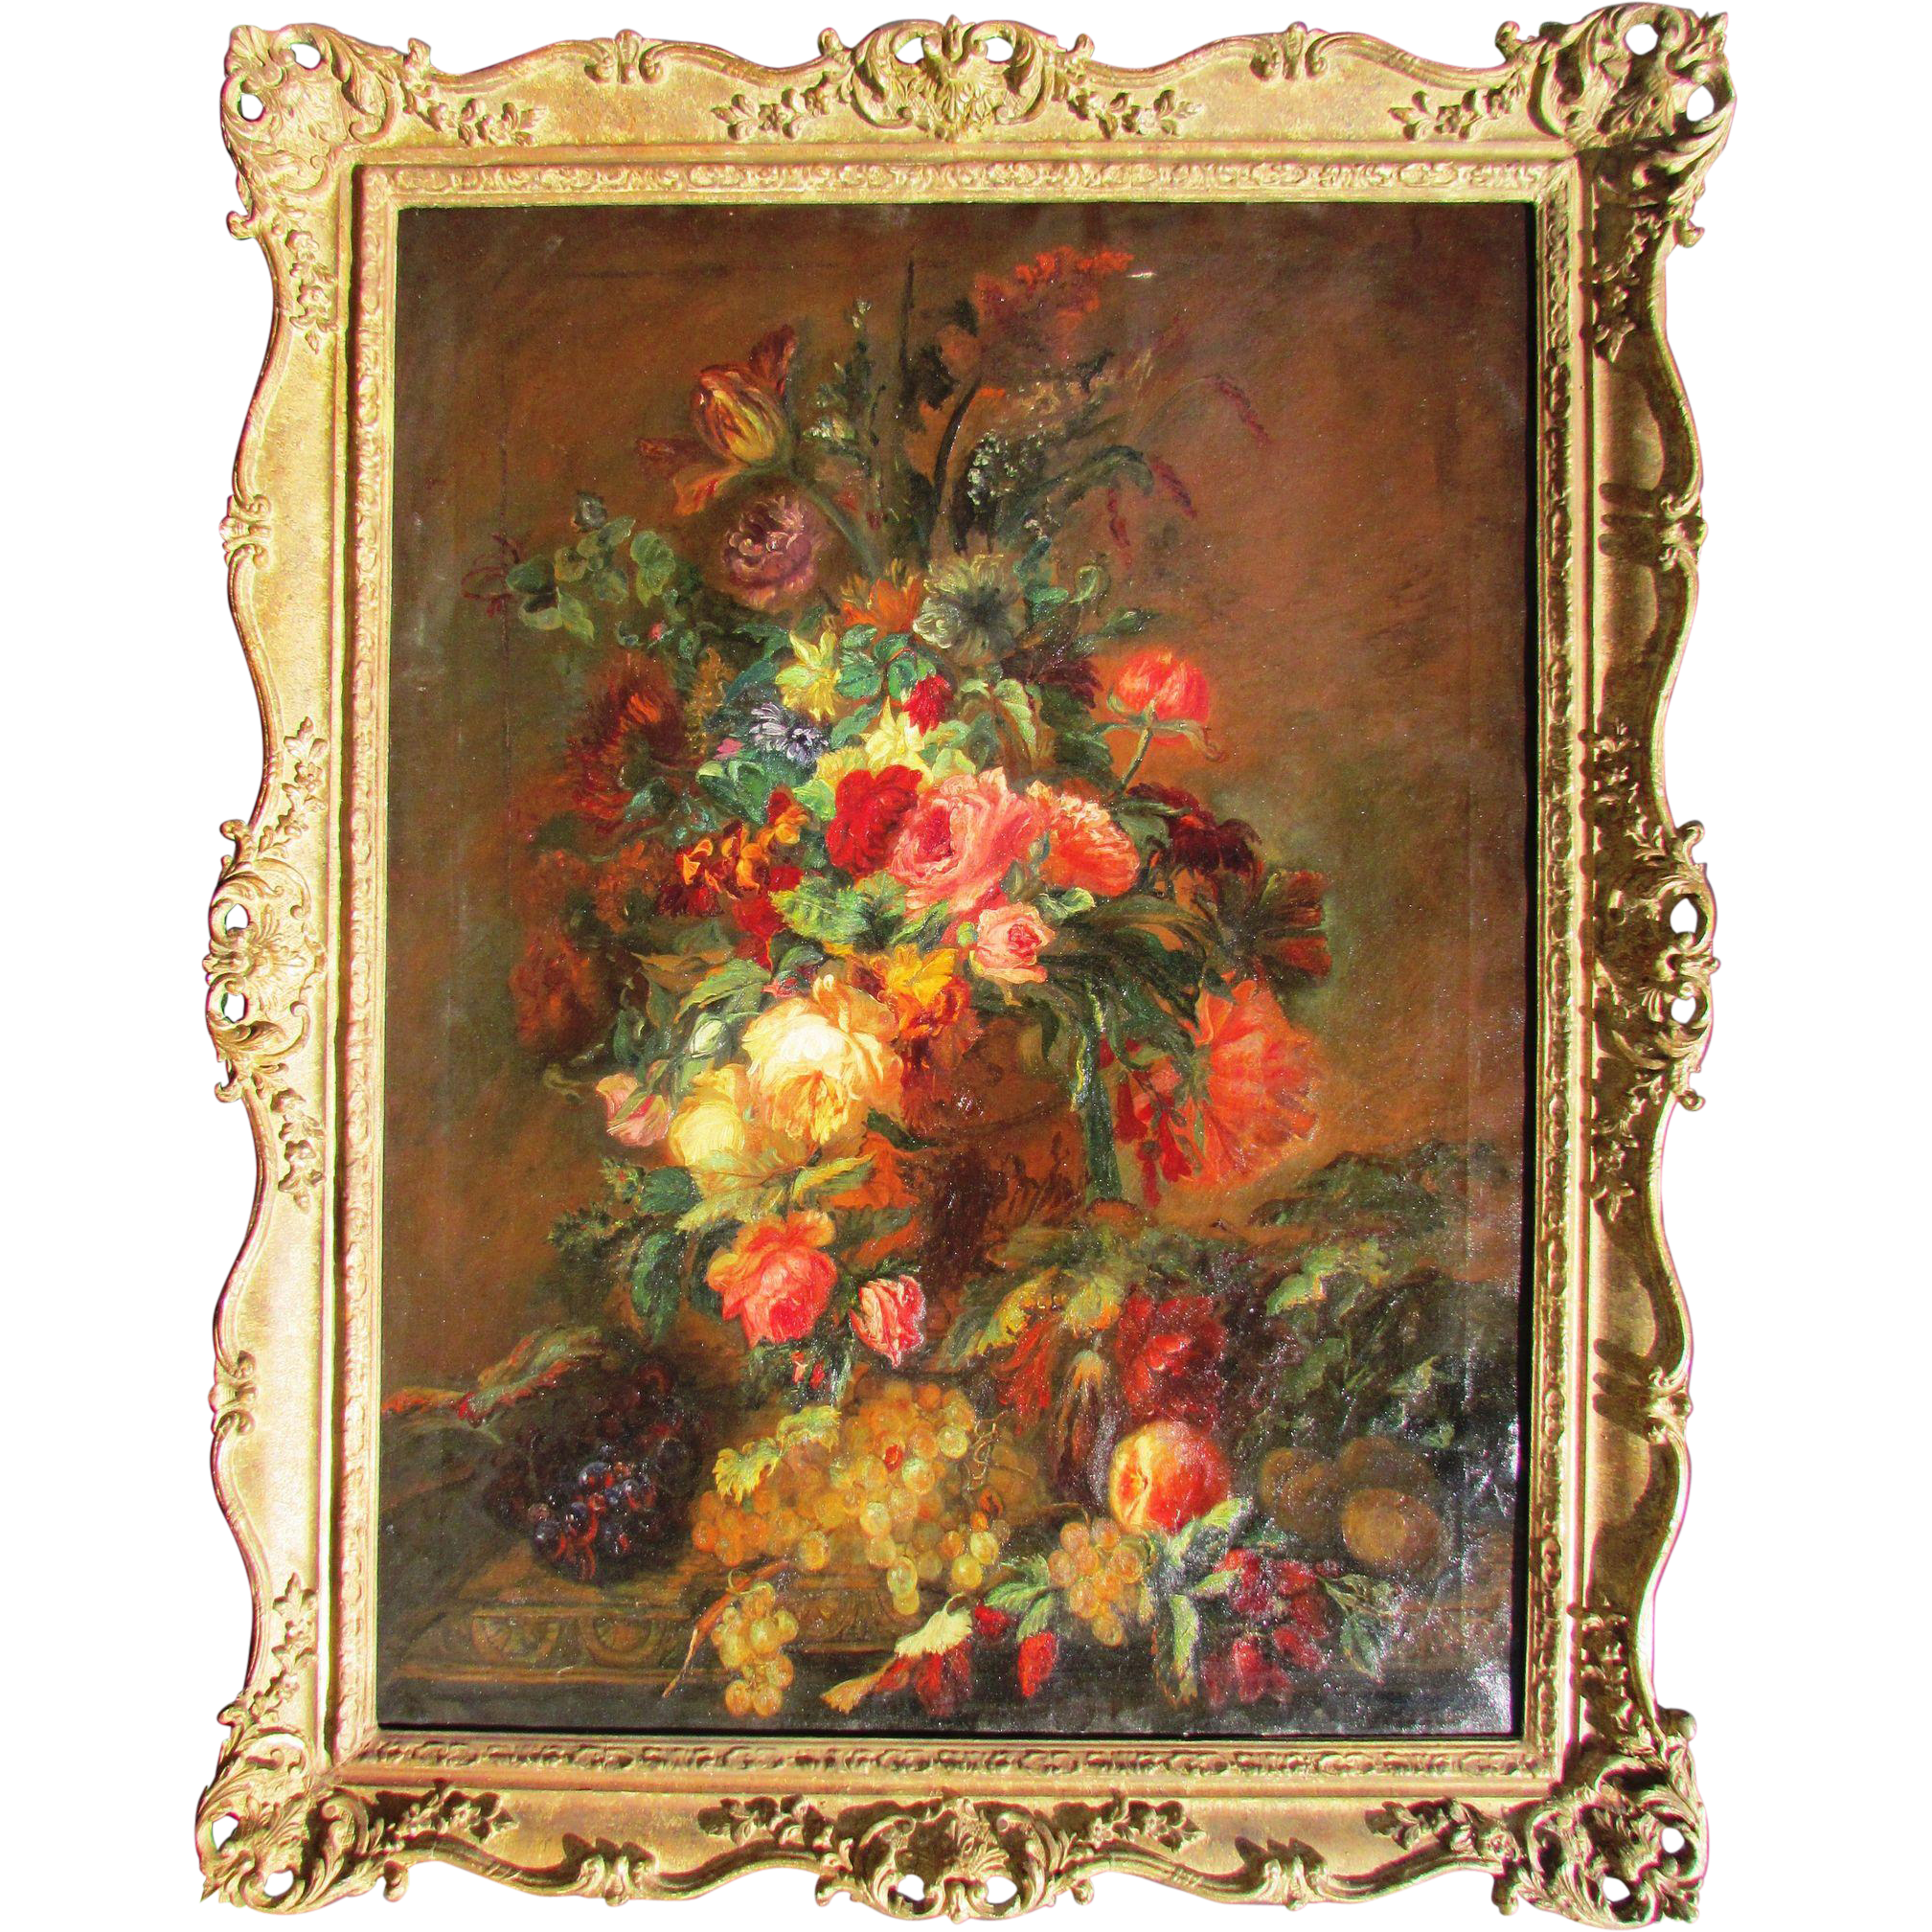 Antique Floral: 19c. Antique Floral Still Life Painting. Oil On Canvas